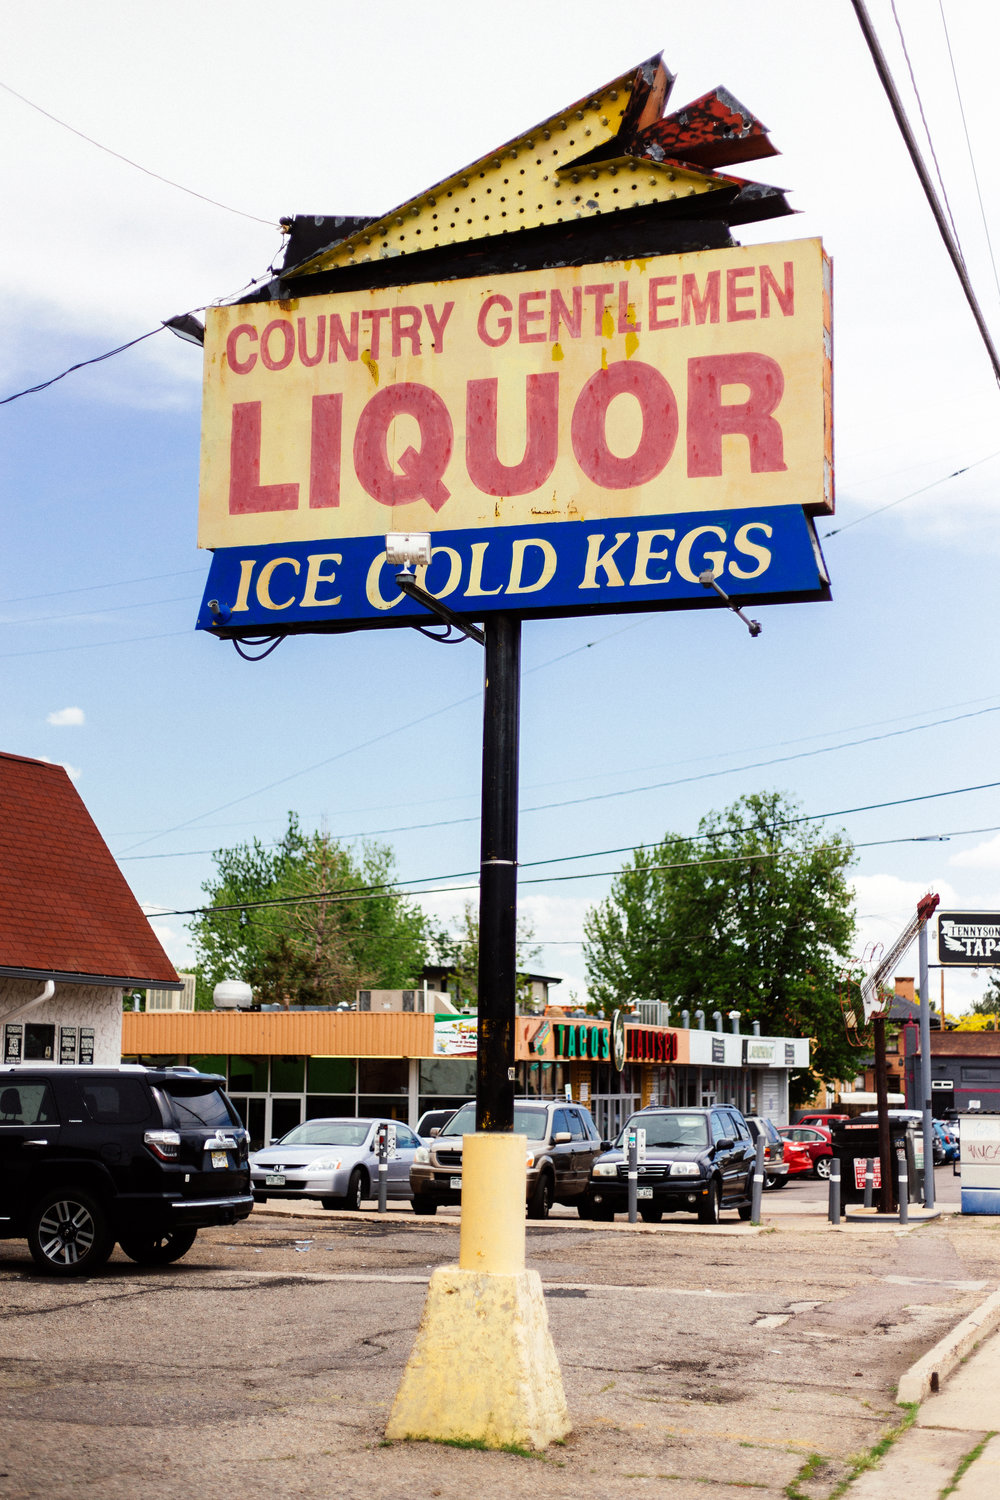 Country Gentleman Liquor edit.jpg